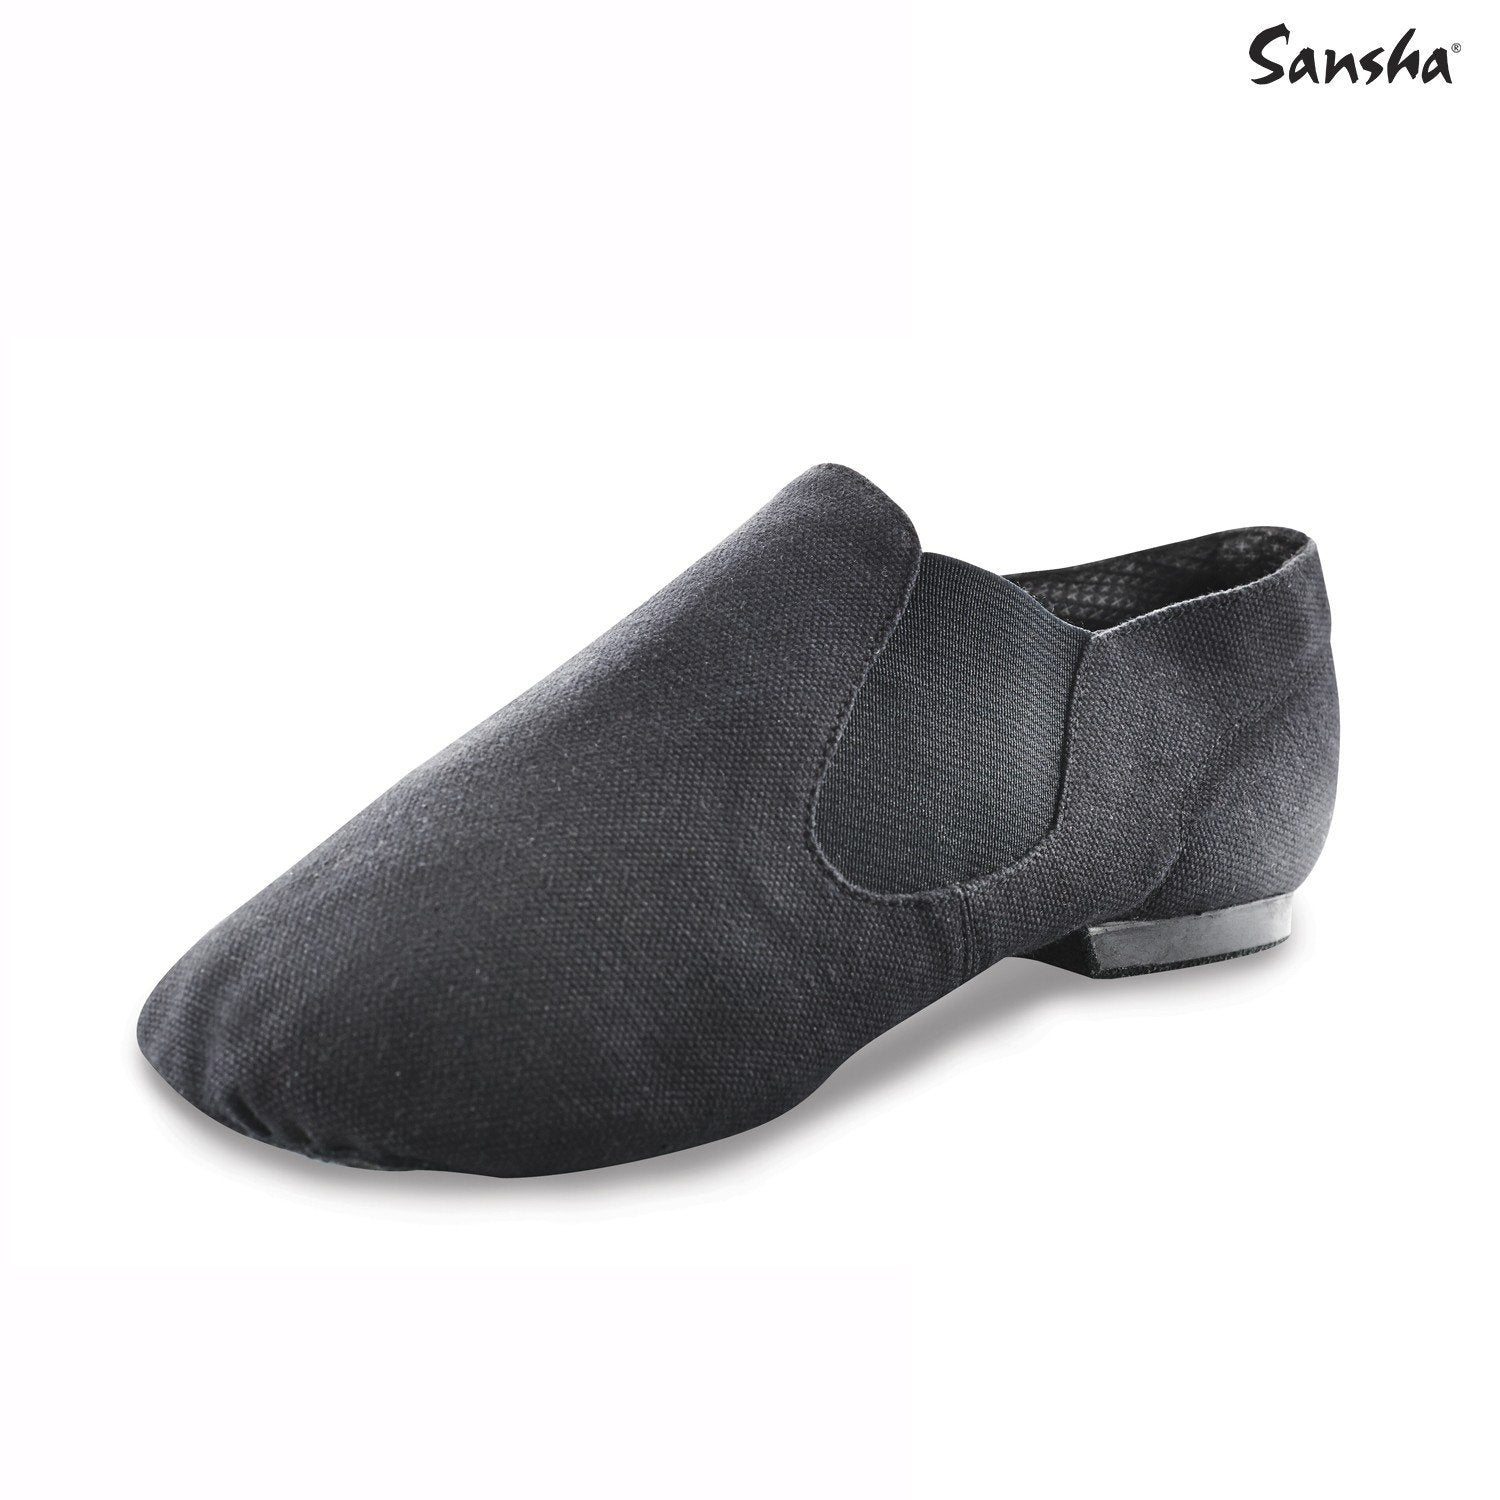 Sansha stretch canvas Slip-On Jazz Shoe